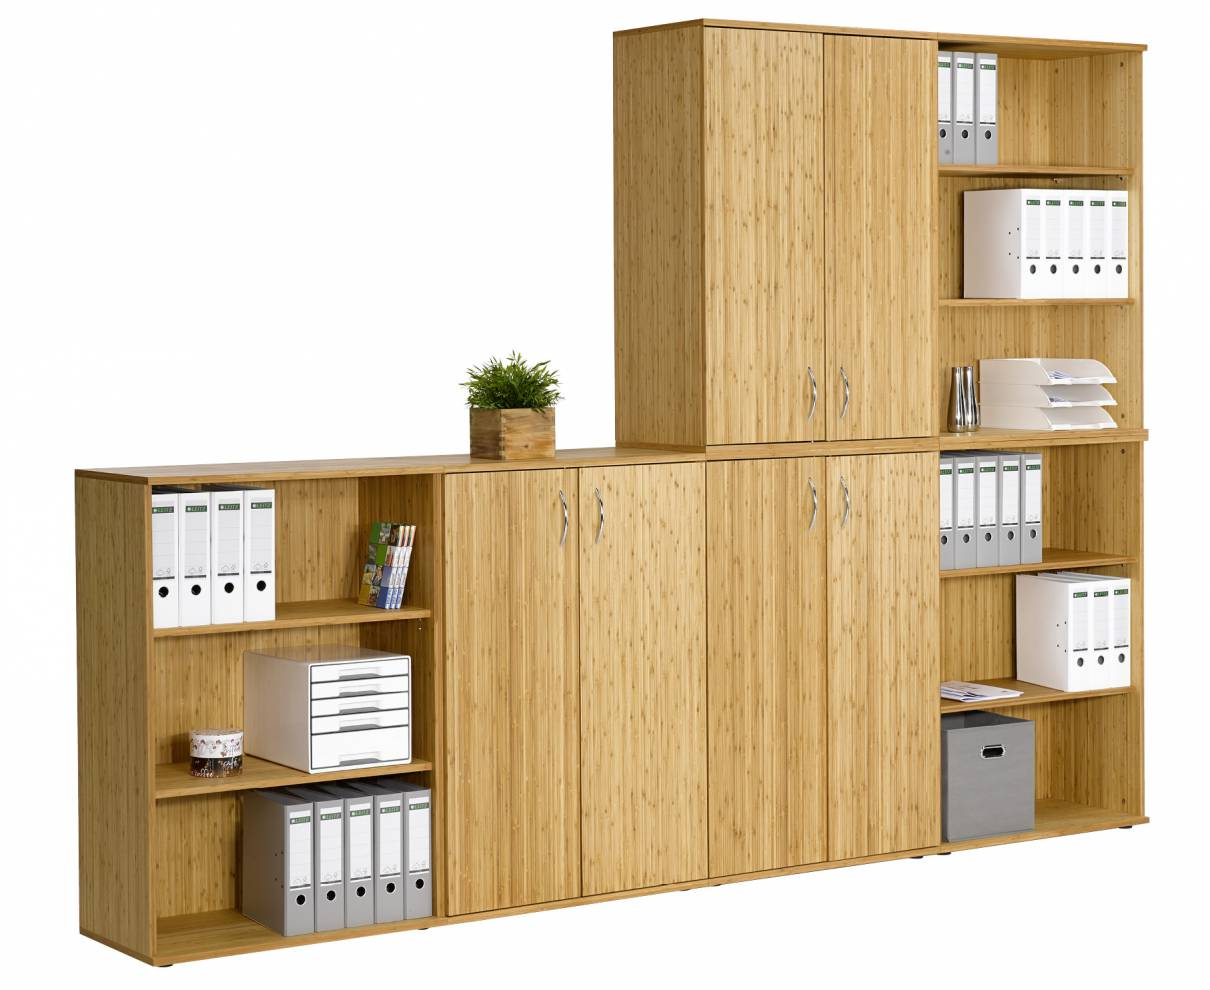 Charmant Bamboo Solid Wood Stackable Cabinets (Sitwell Collection)